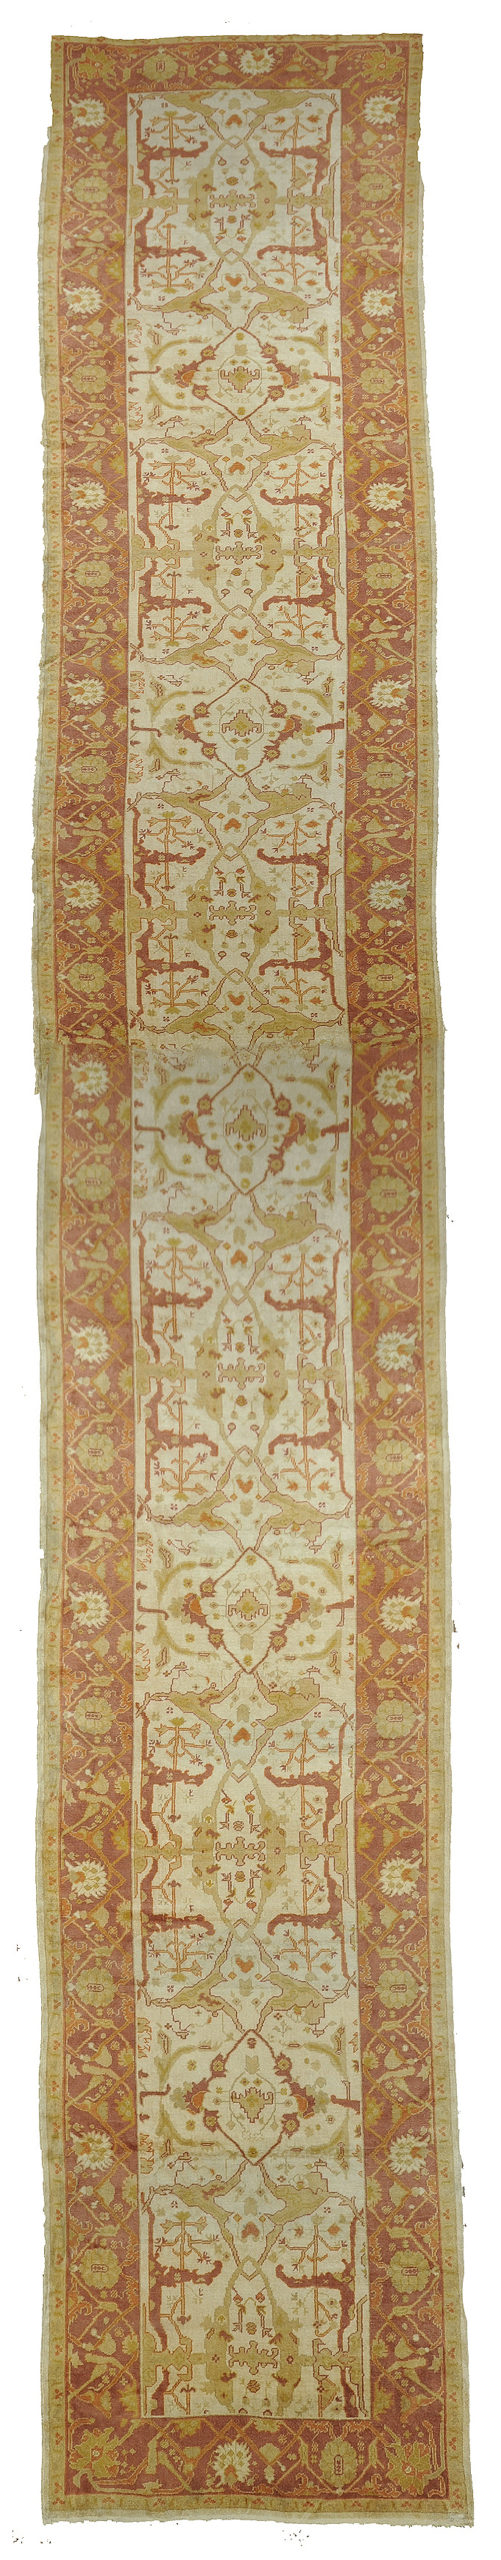 Organic Agra Ziegler & Co rugs and more